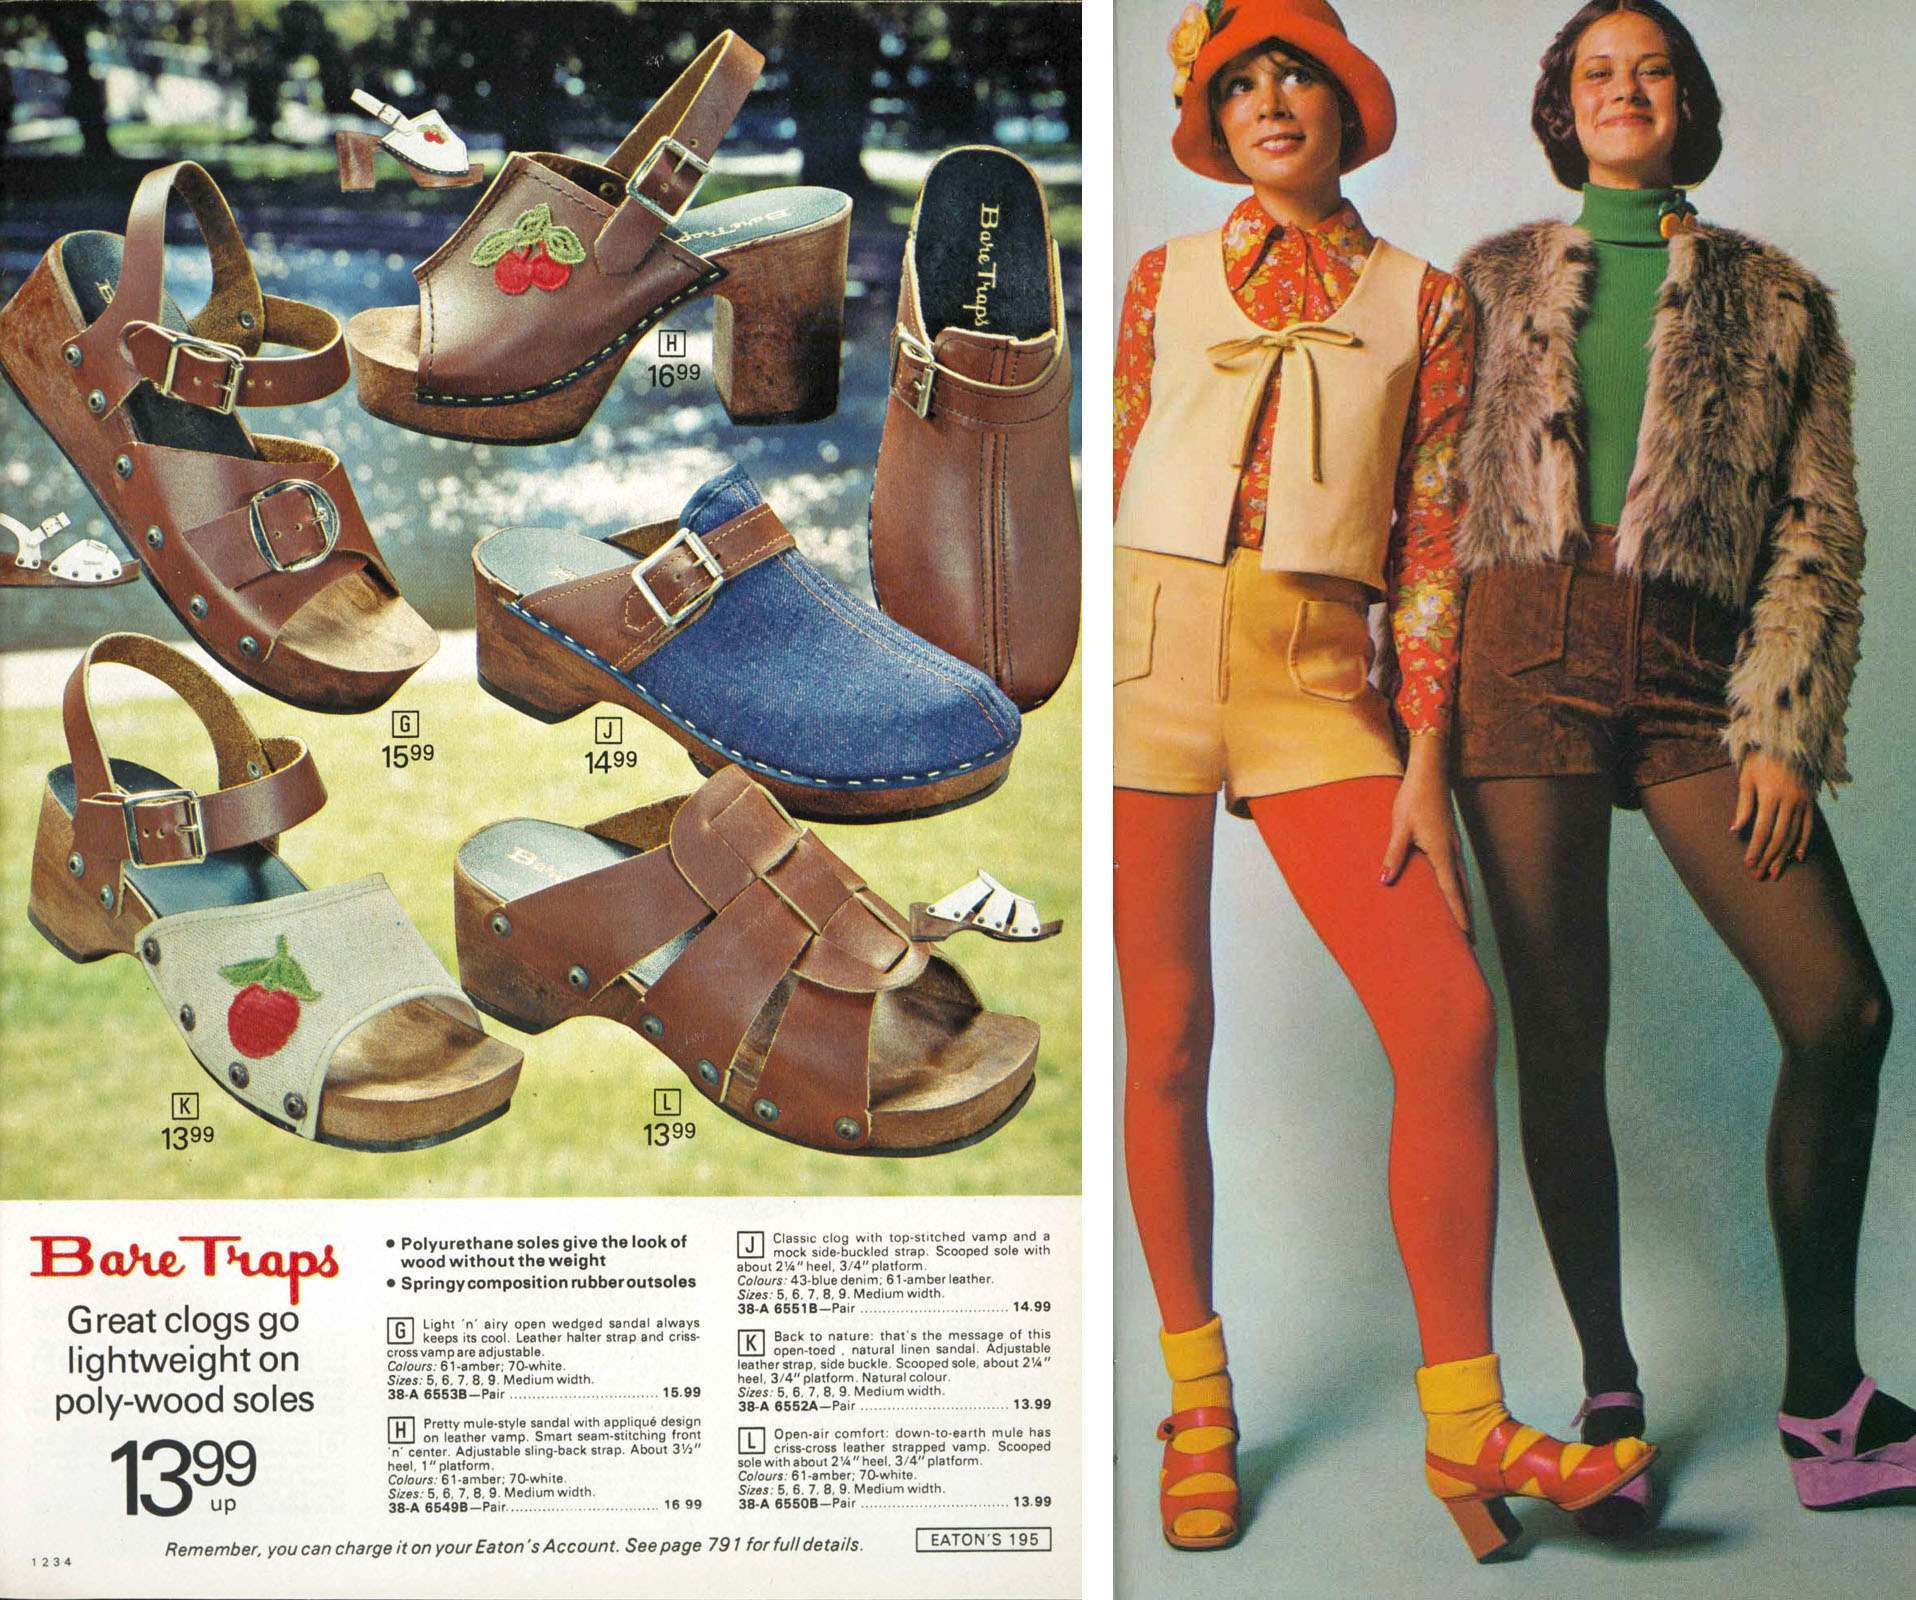 The Good The Bad And The Tacky 20 Fashion Trends Of The